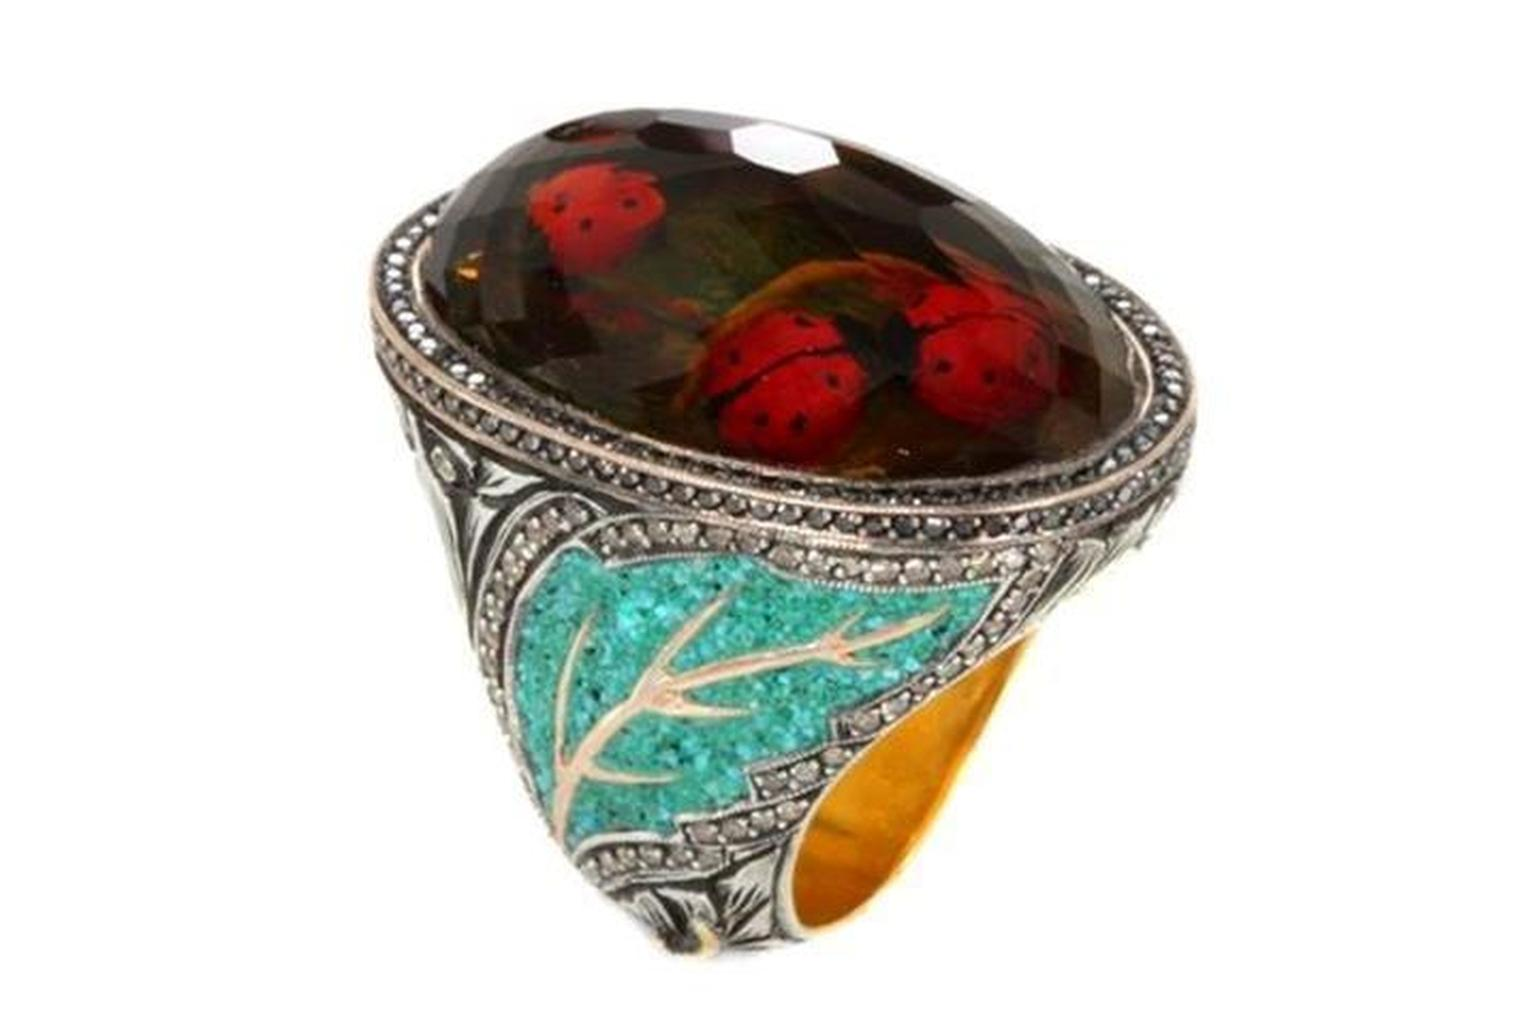 Sevan Biçakçi Ladybird ring with scurrying ladybugs beneath an inversely carved smoky topaz.